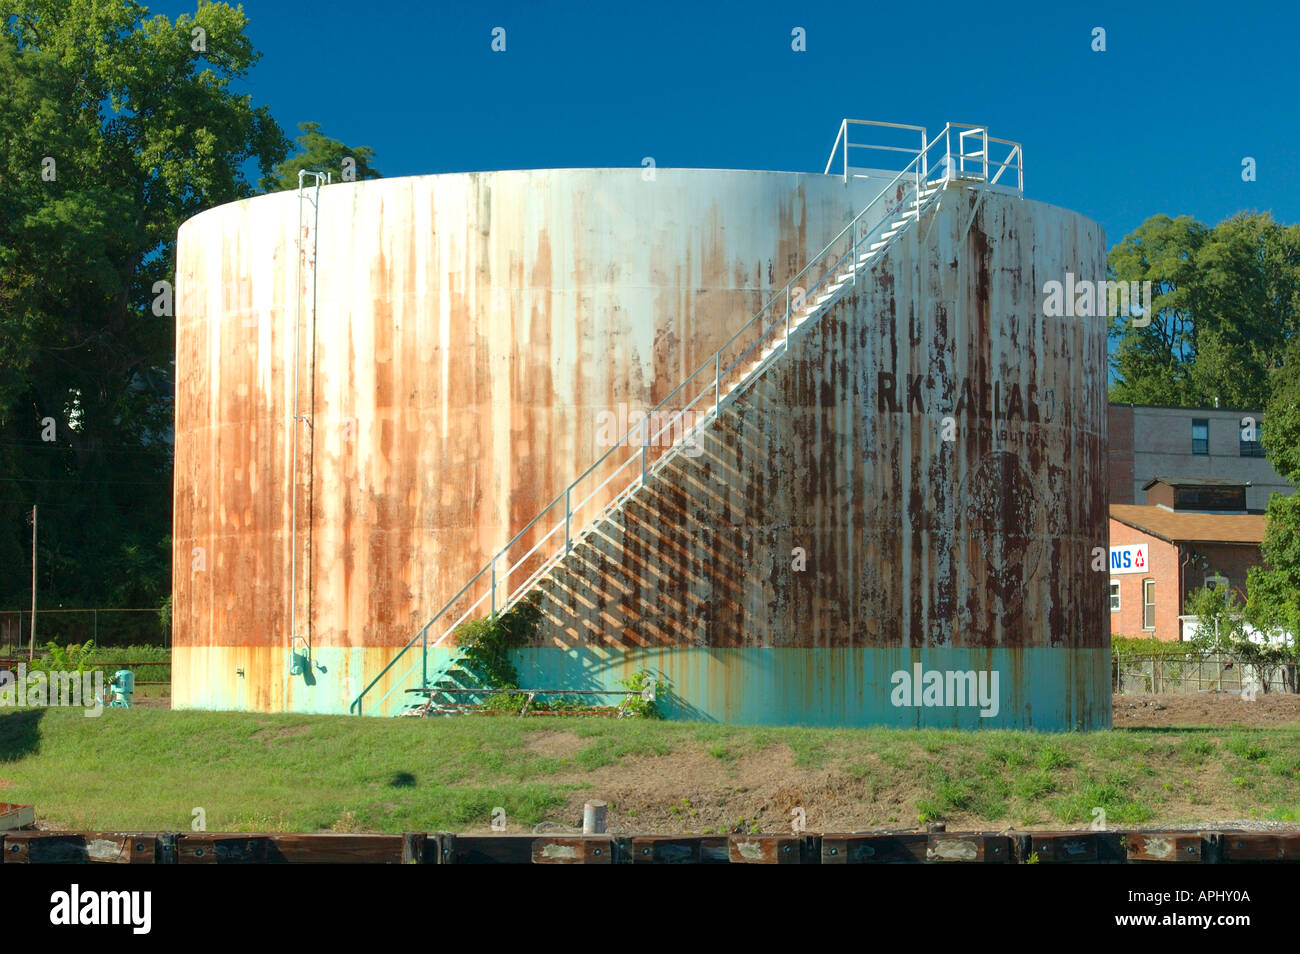 Rusty Oil Storage Tank On The Banks Of The Hudson River, Kingston, New York